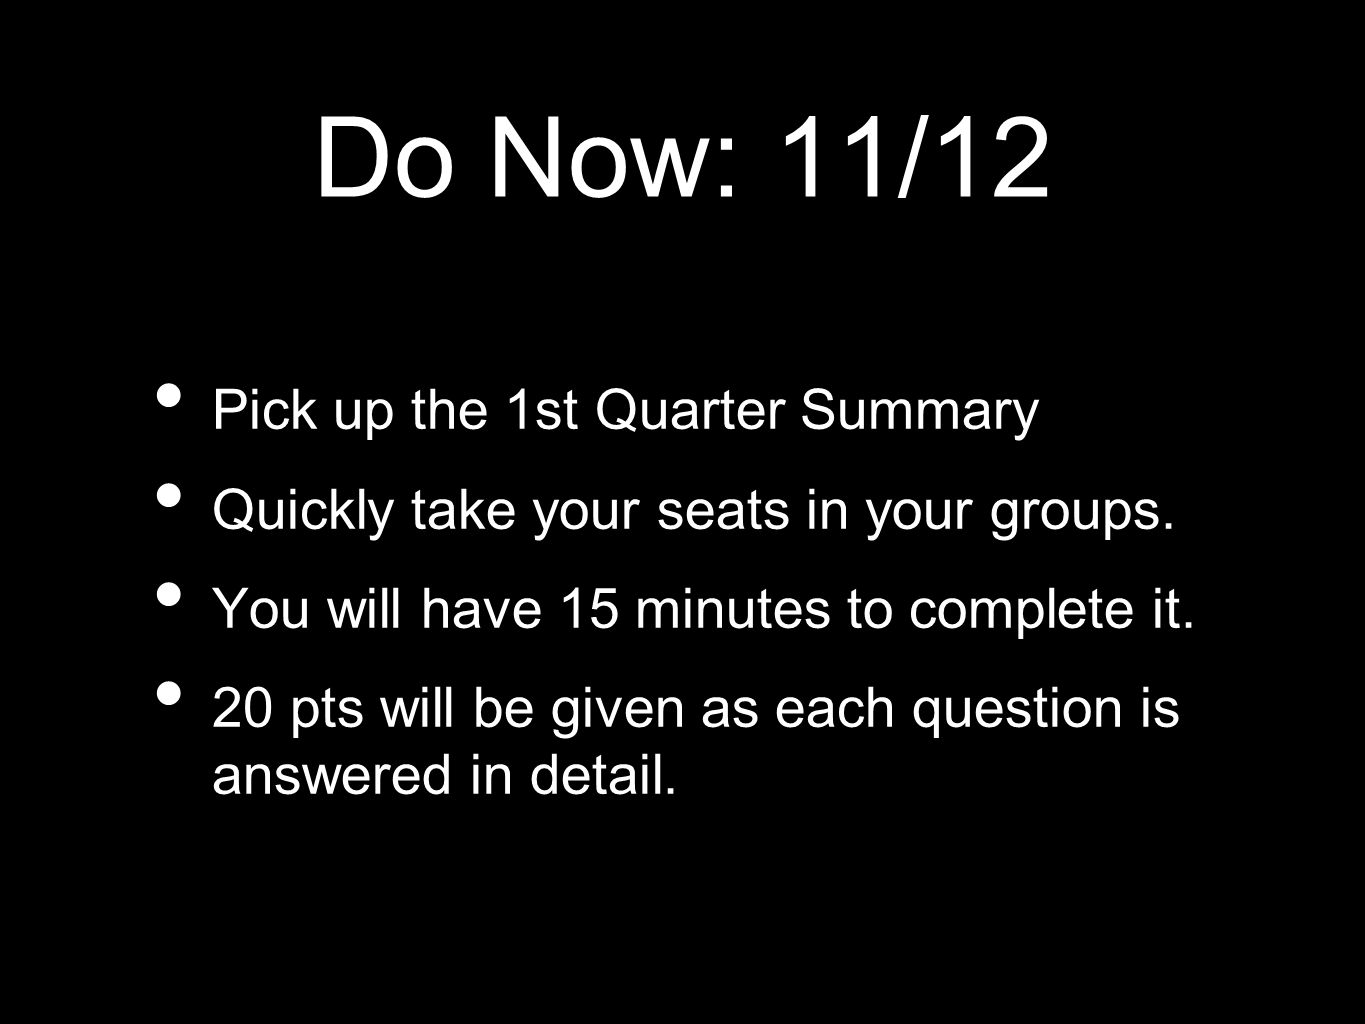 Do Now: 11/12 Pick up the 1st Quarter Summary